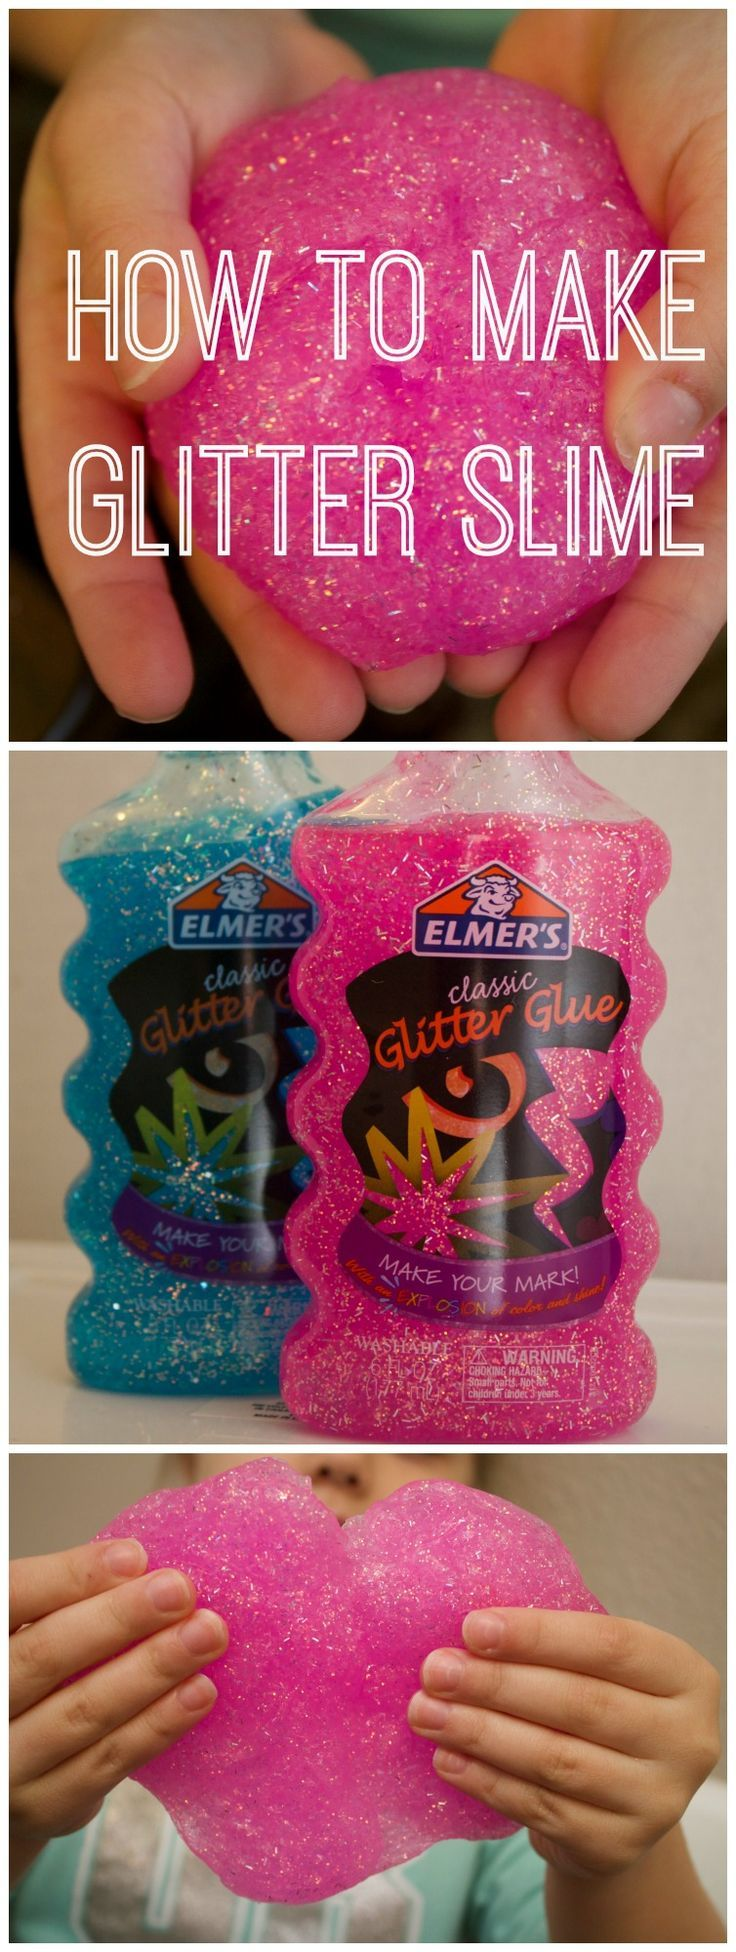 How To Make Glitter Slime With Only 3 Ings Easy Recipe For Homemade Great Craft Kids